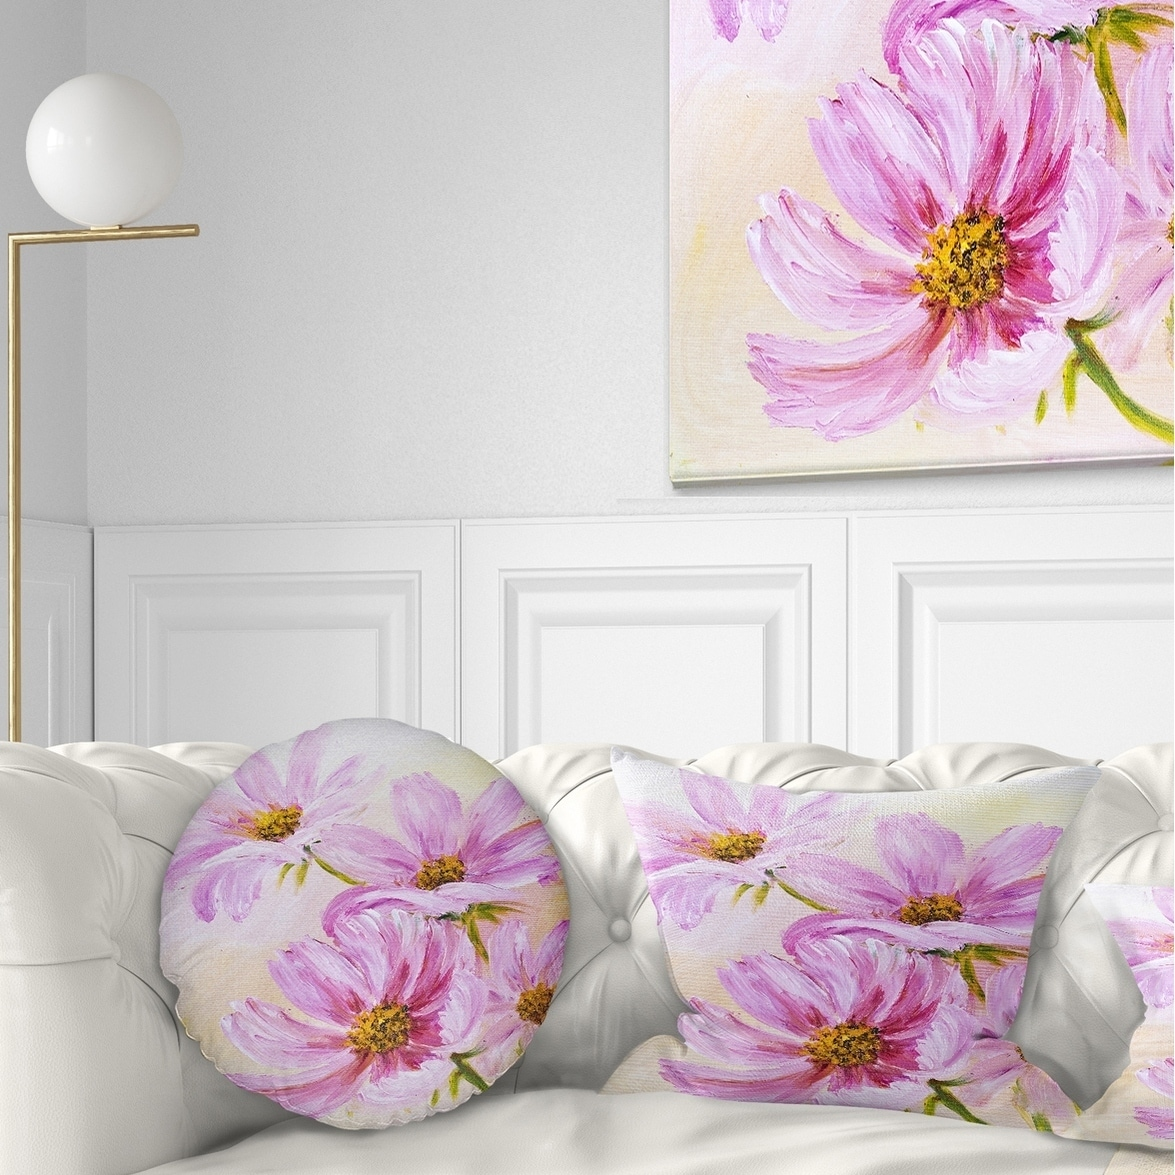 Design Art Designart Blooming Pink Cosmos Flowers Floral Throw Pillow Walmart Com Walmart Com